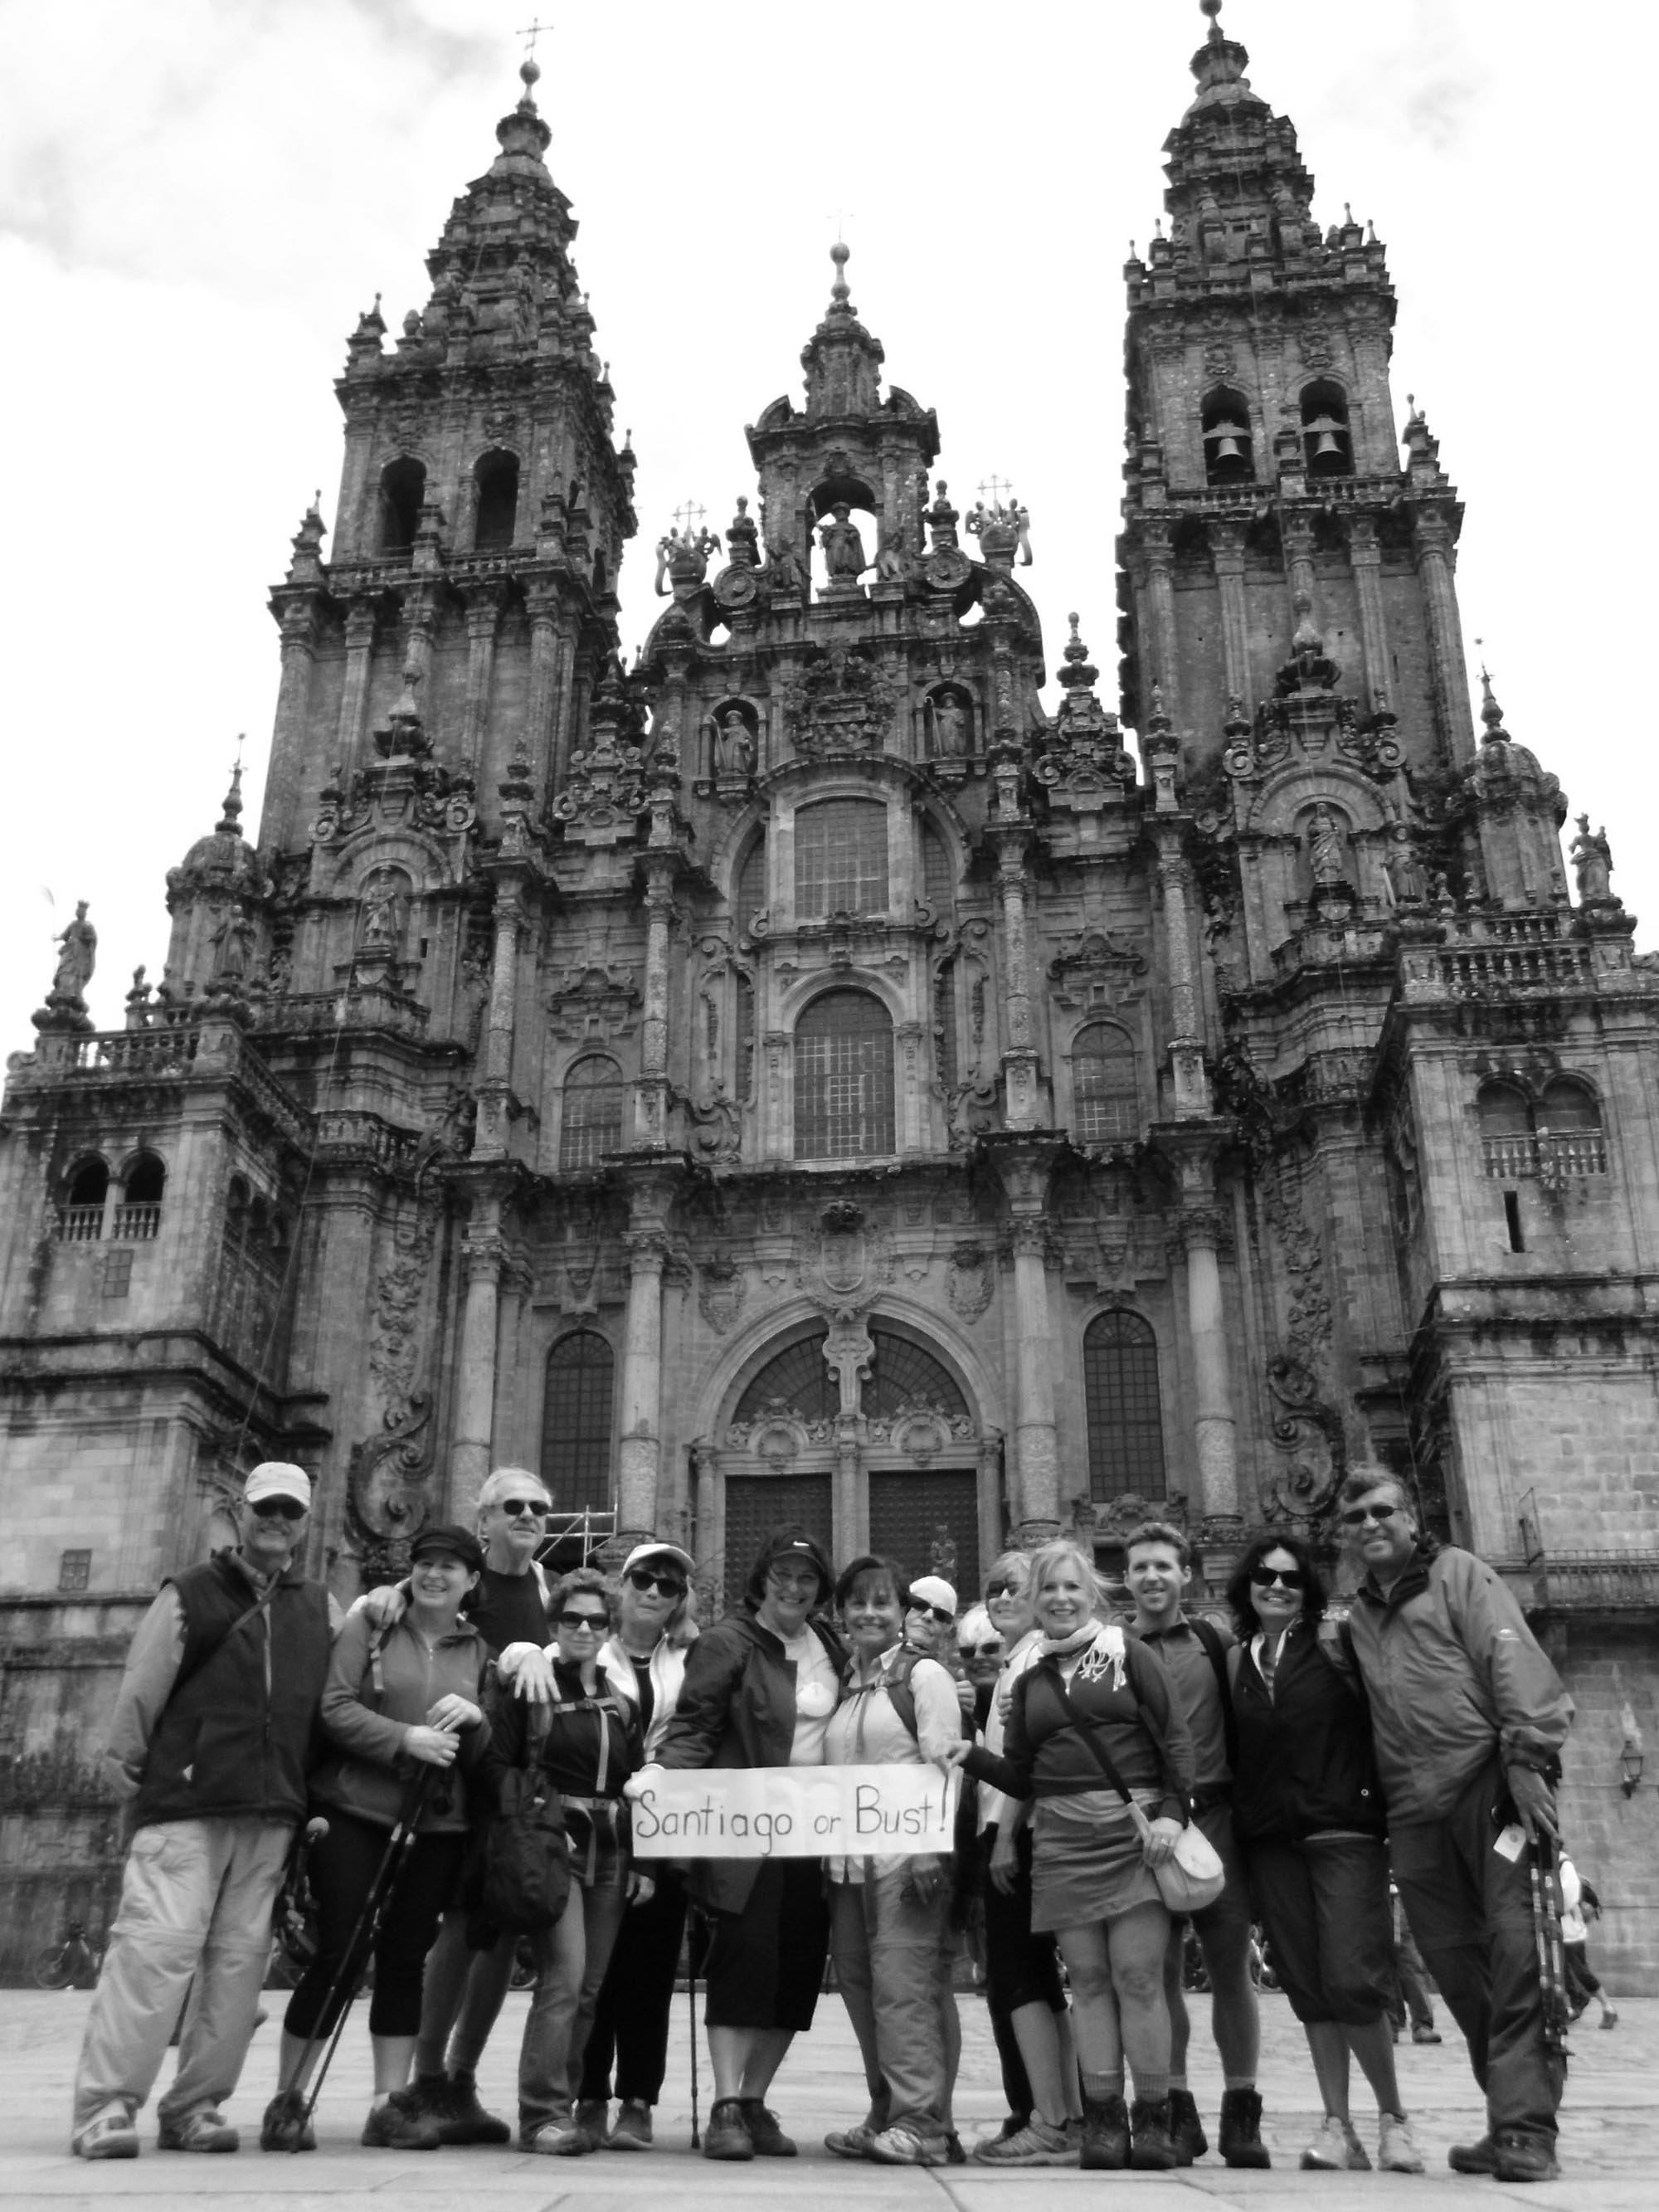 TRAVELERS walk The Way of St. James for a variety of reasons — religious, cultural, personal. Here a group celebrates reaching the conclusion of The Way, Compestela de Santiago. Courtesy photos